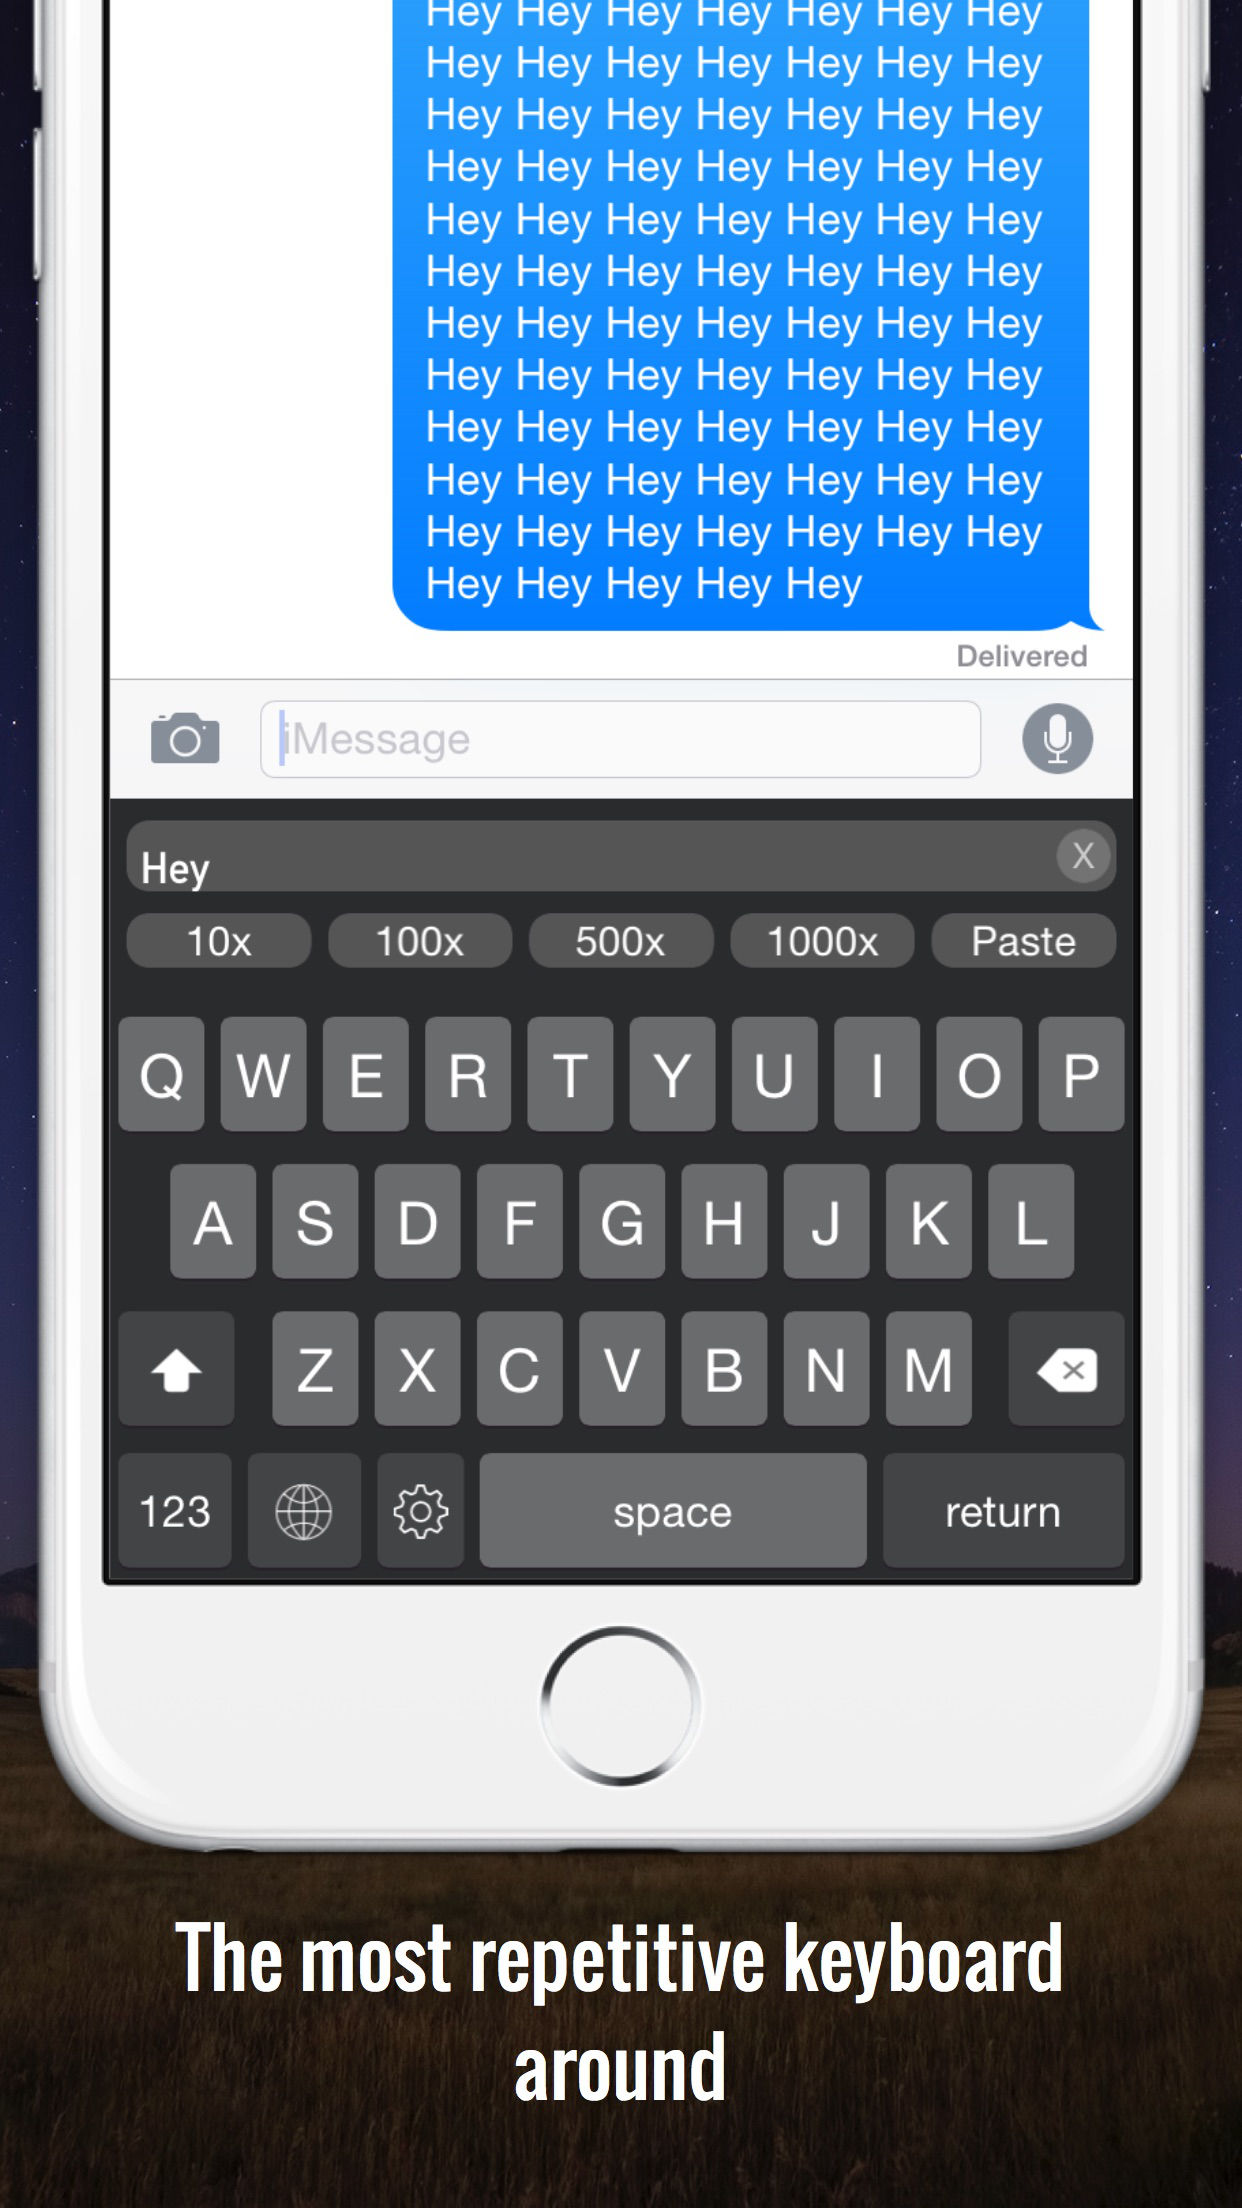 Technology - RepeaterBoard was created natively for iOS in Swift. It was built on top of an open source implementation of Apple's own keyboard. From this I added extra buttons and functionality to allow insertion of repeated messages.